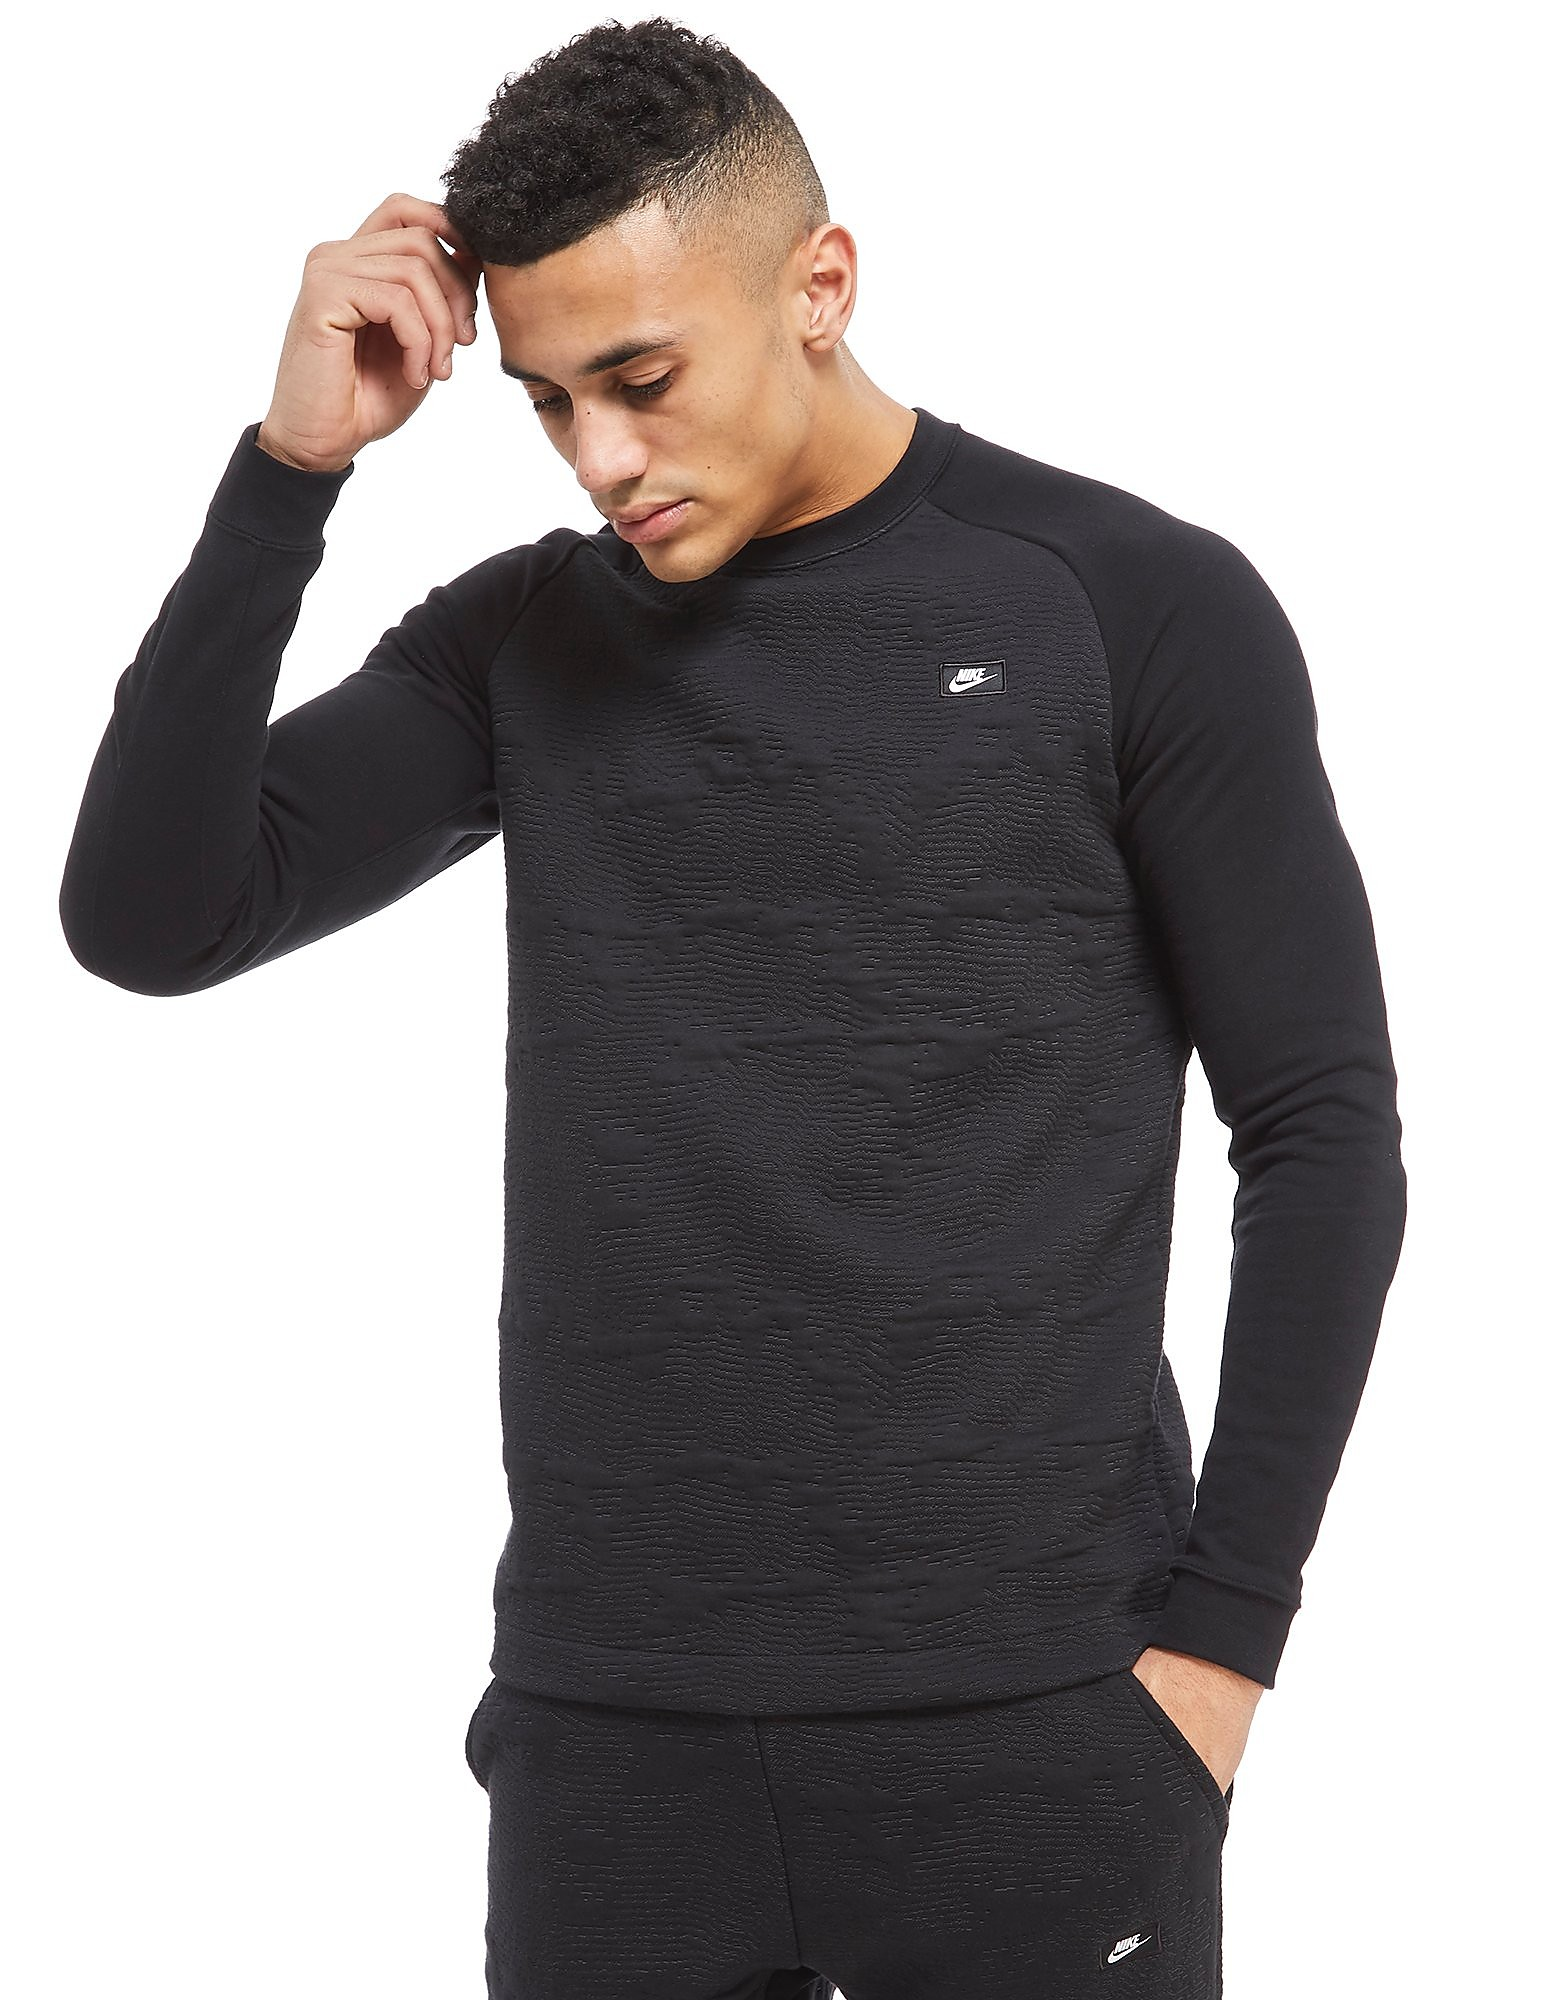 Nike Modern Winter Crew Sweatshirt